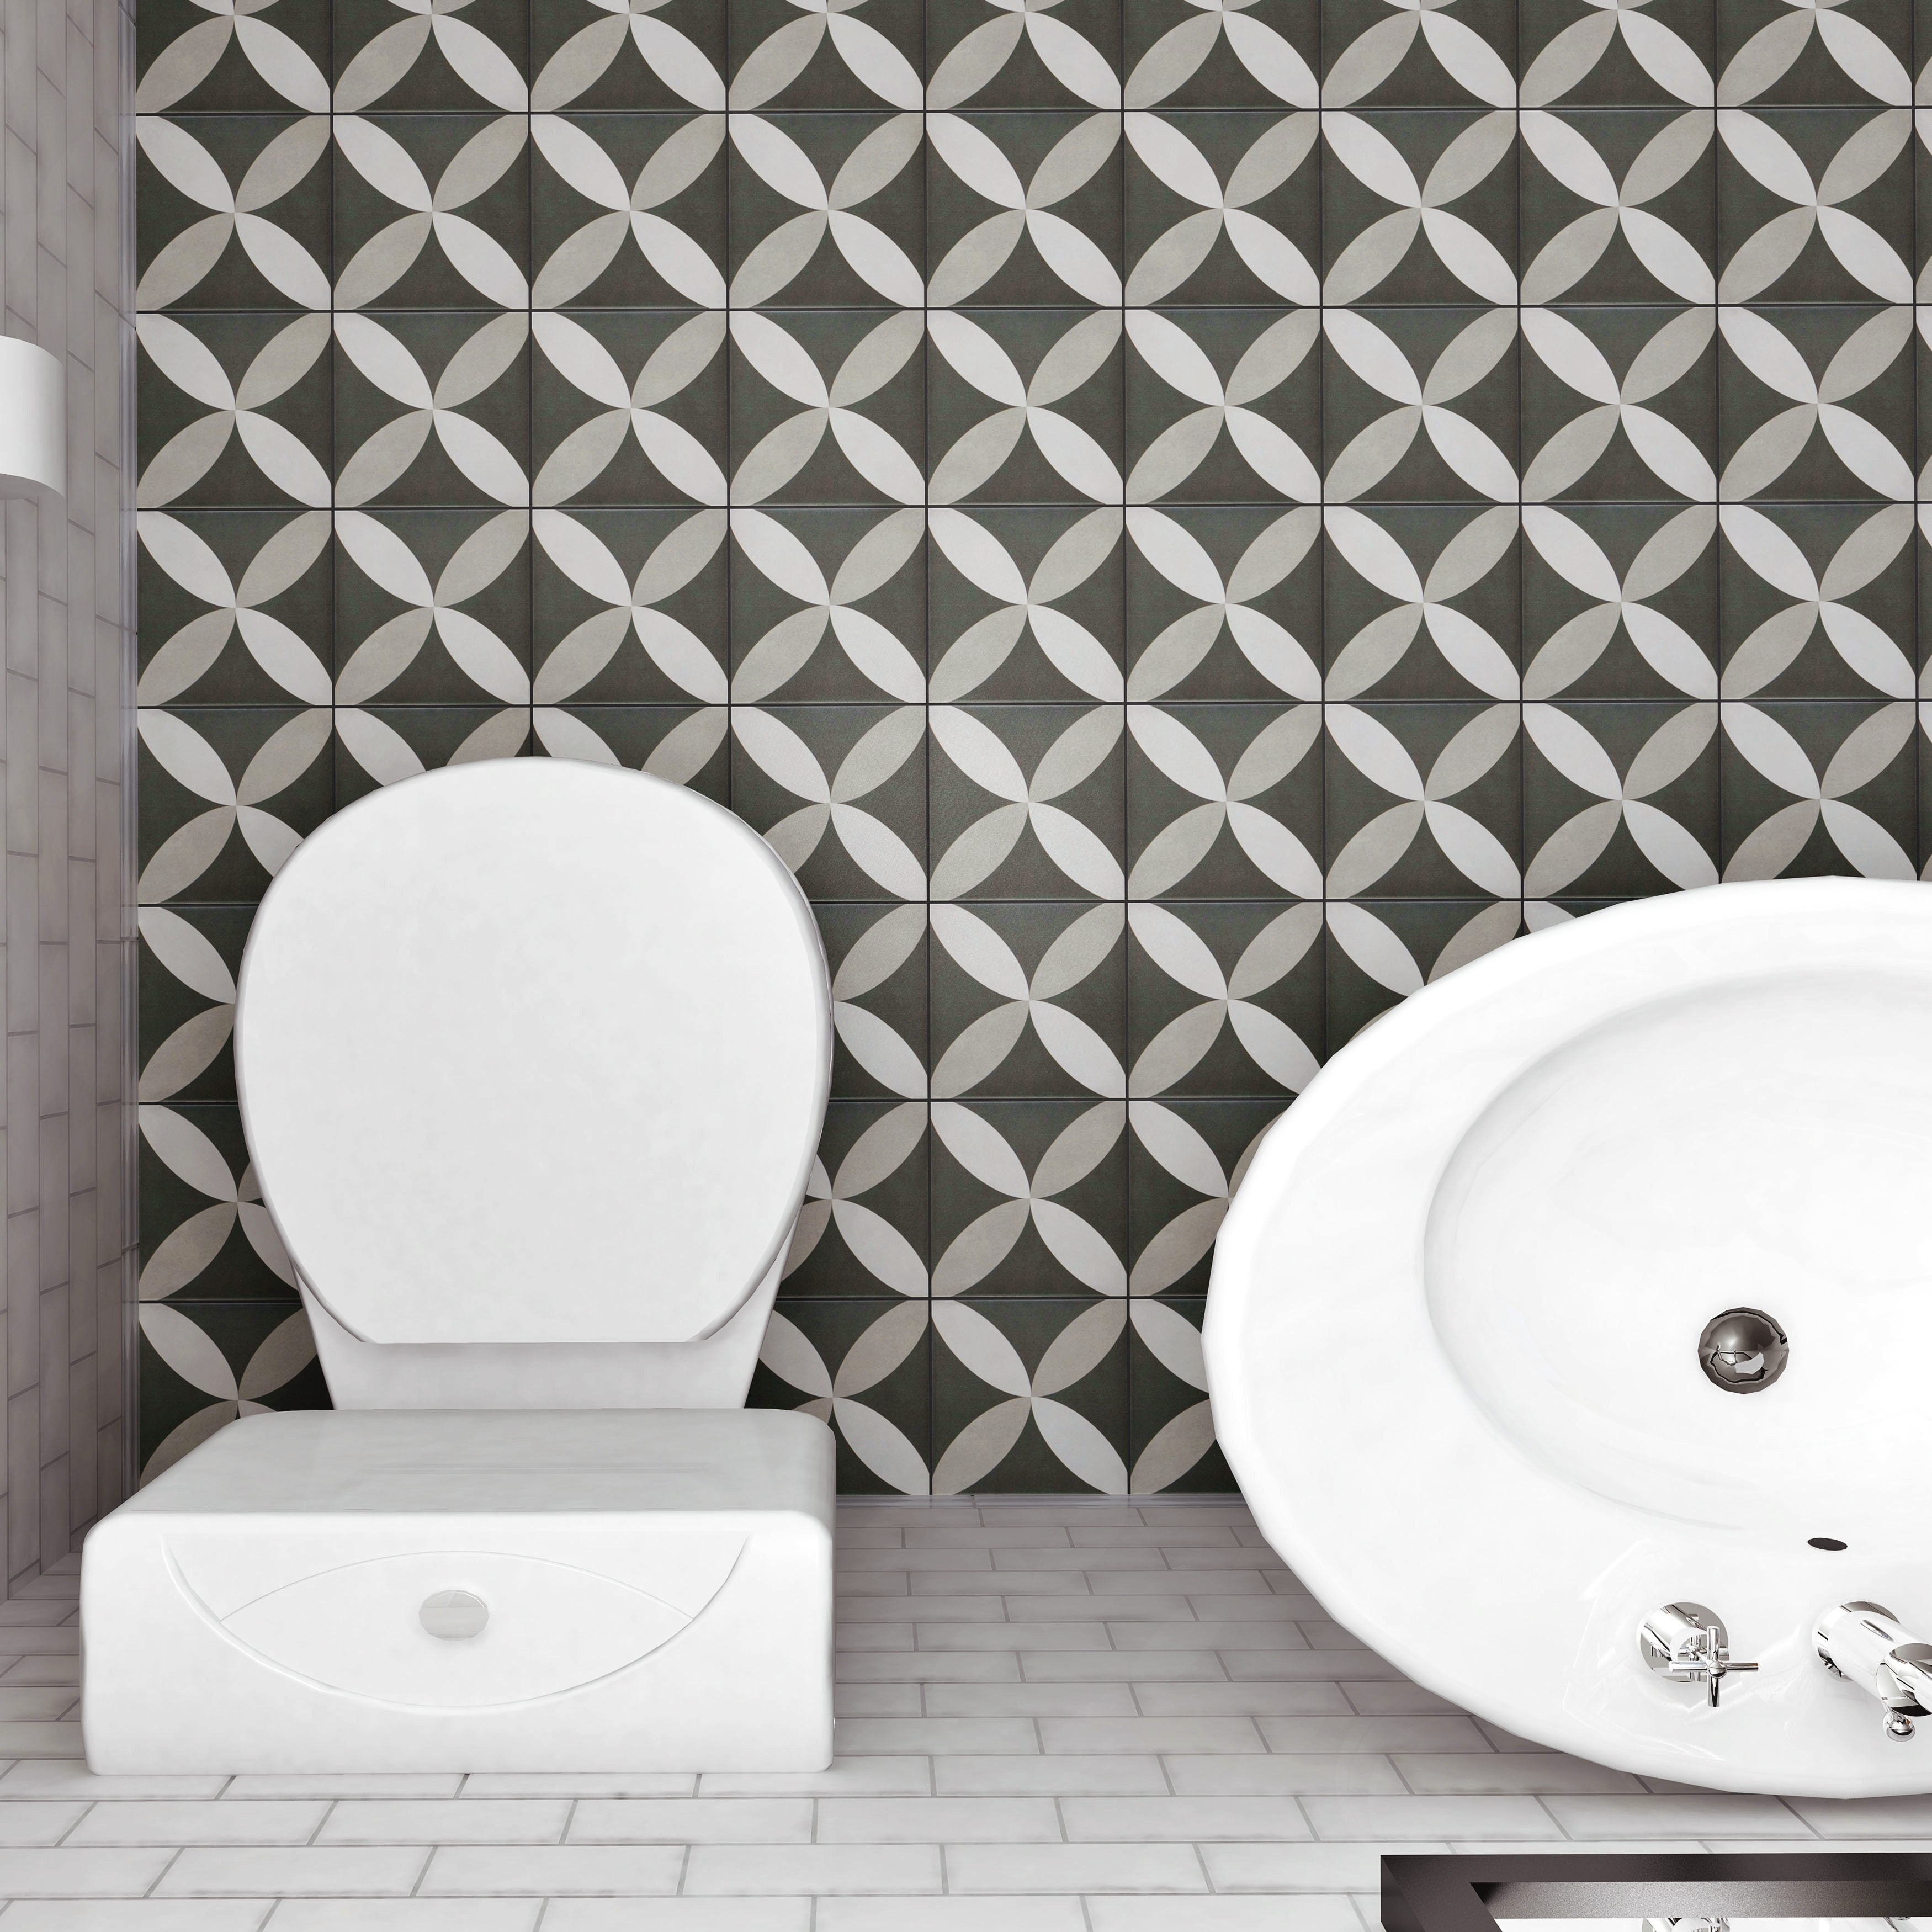 Shop Somertile 775x775 Inch Thirties Petal Ceramic Floor And Wall